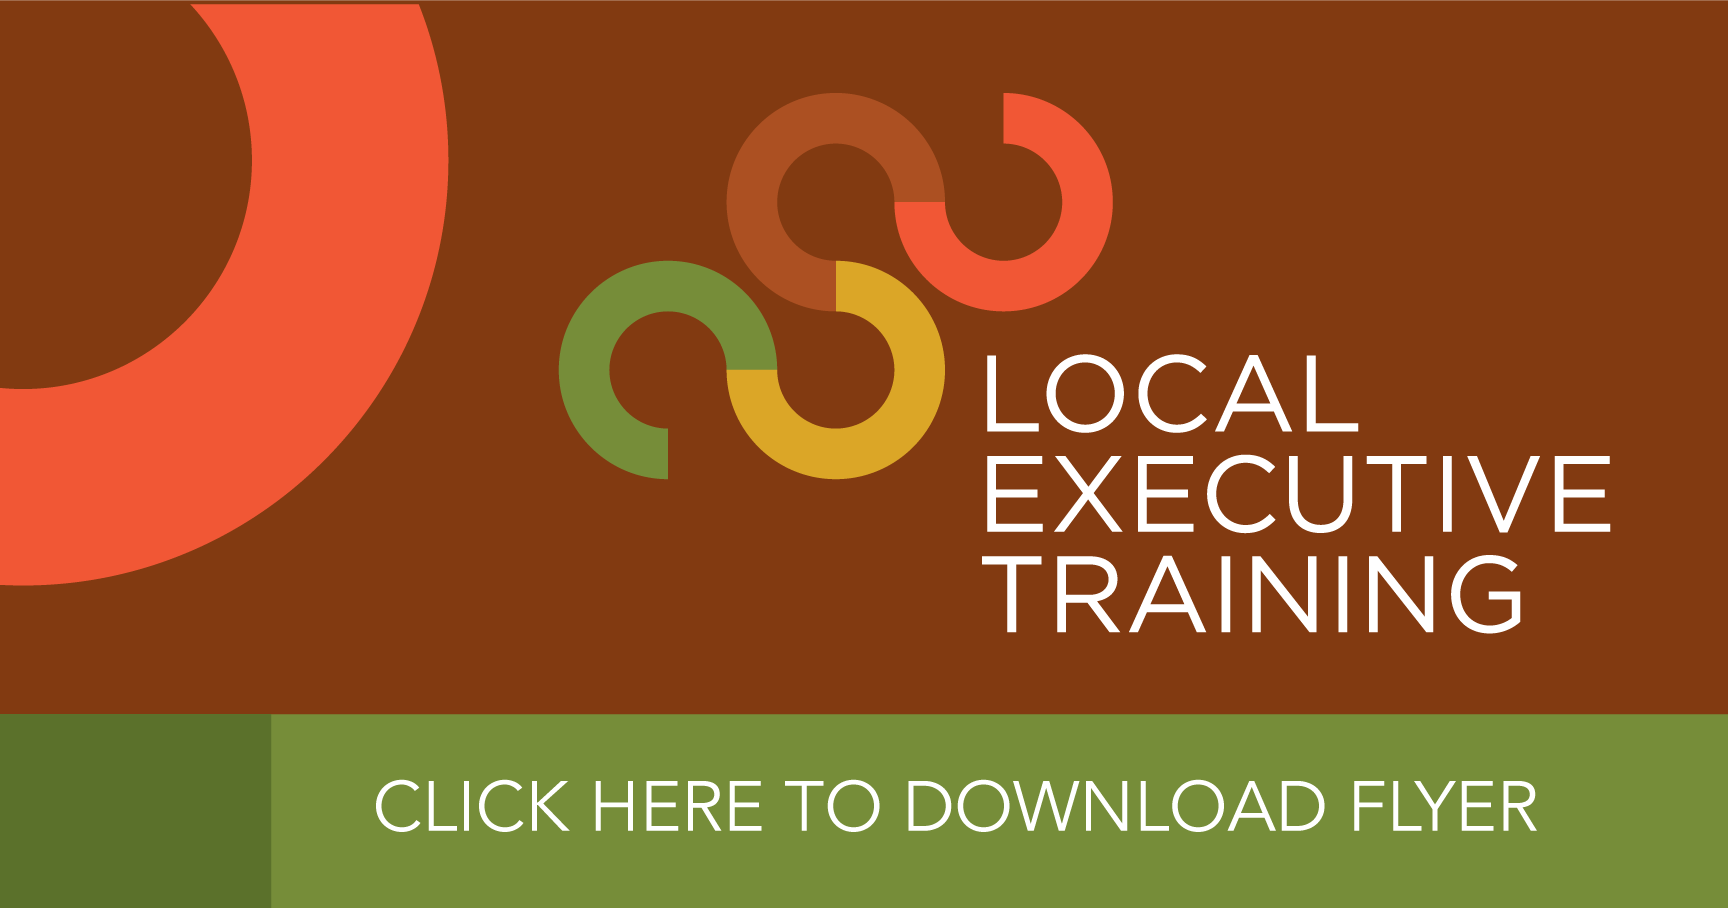 Local Executive Training click